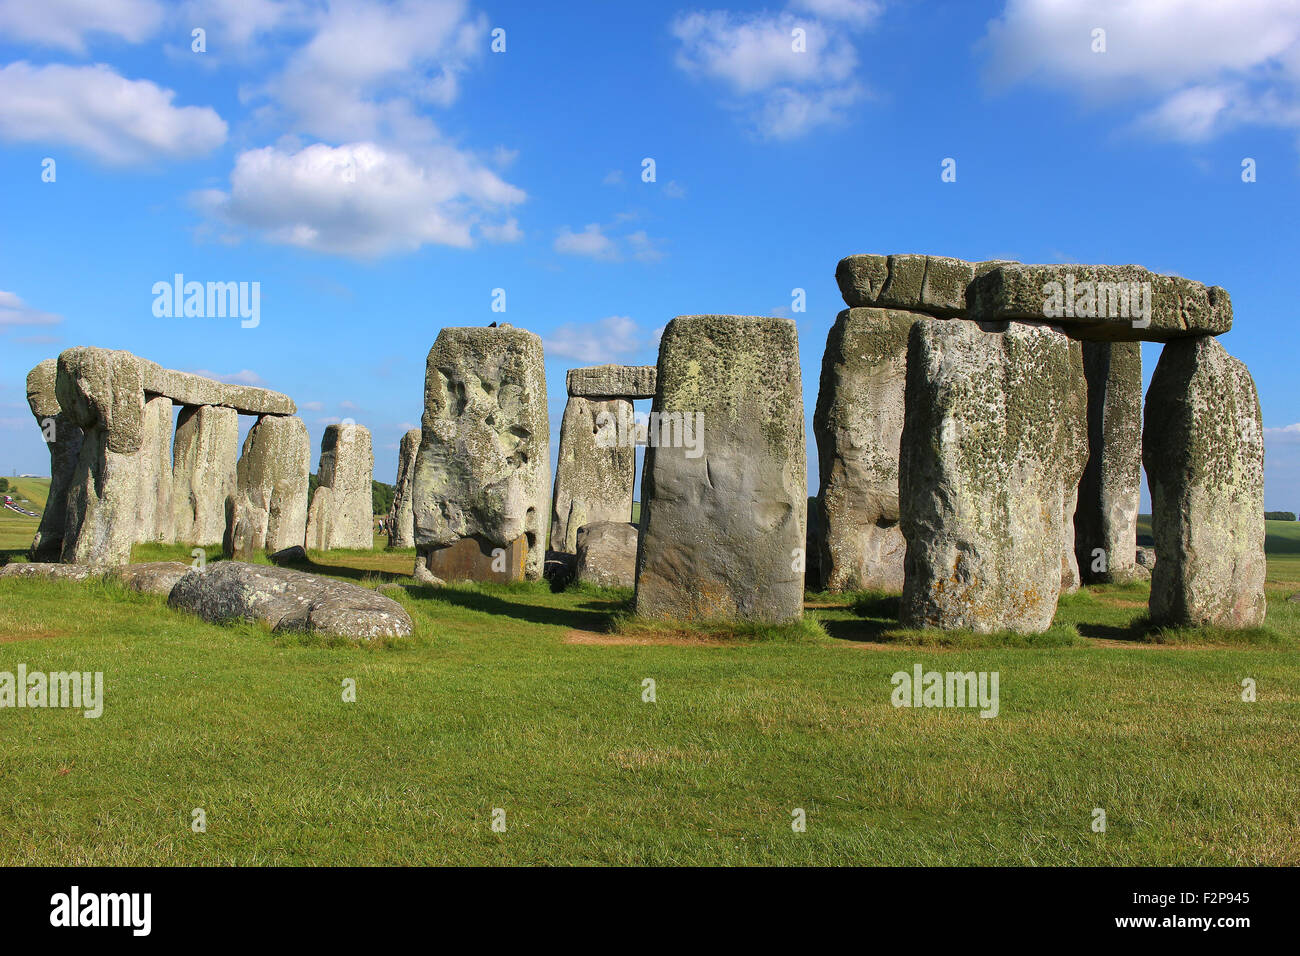 Stonehenge under a blue sky - Stock Image